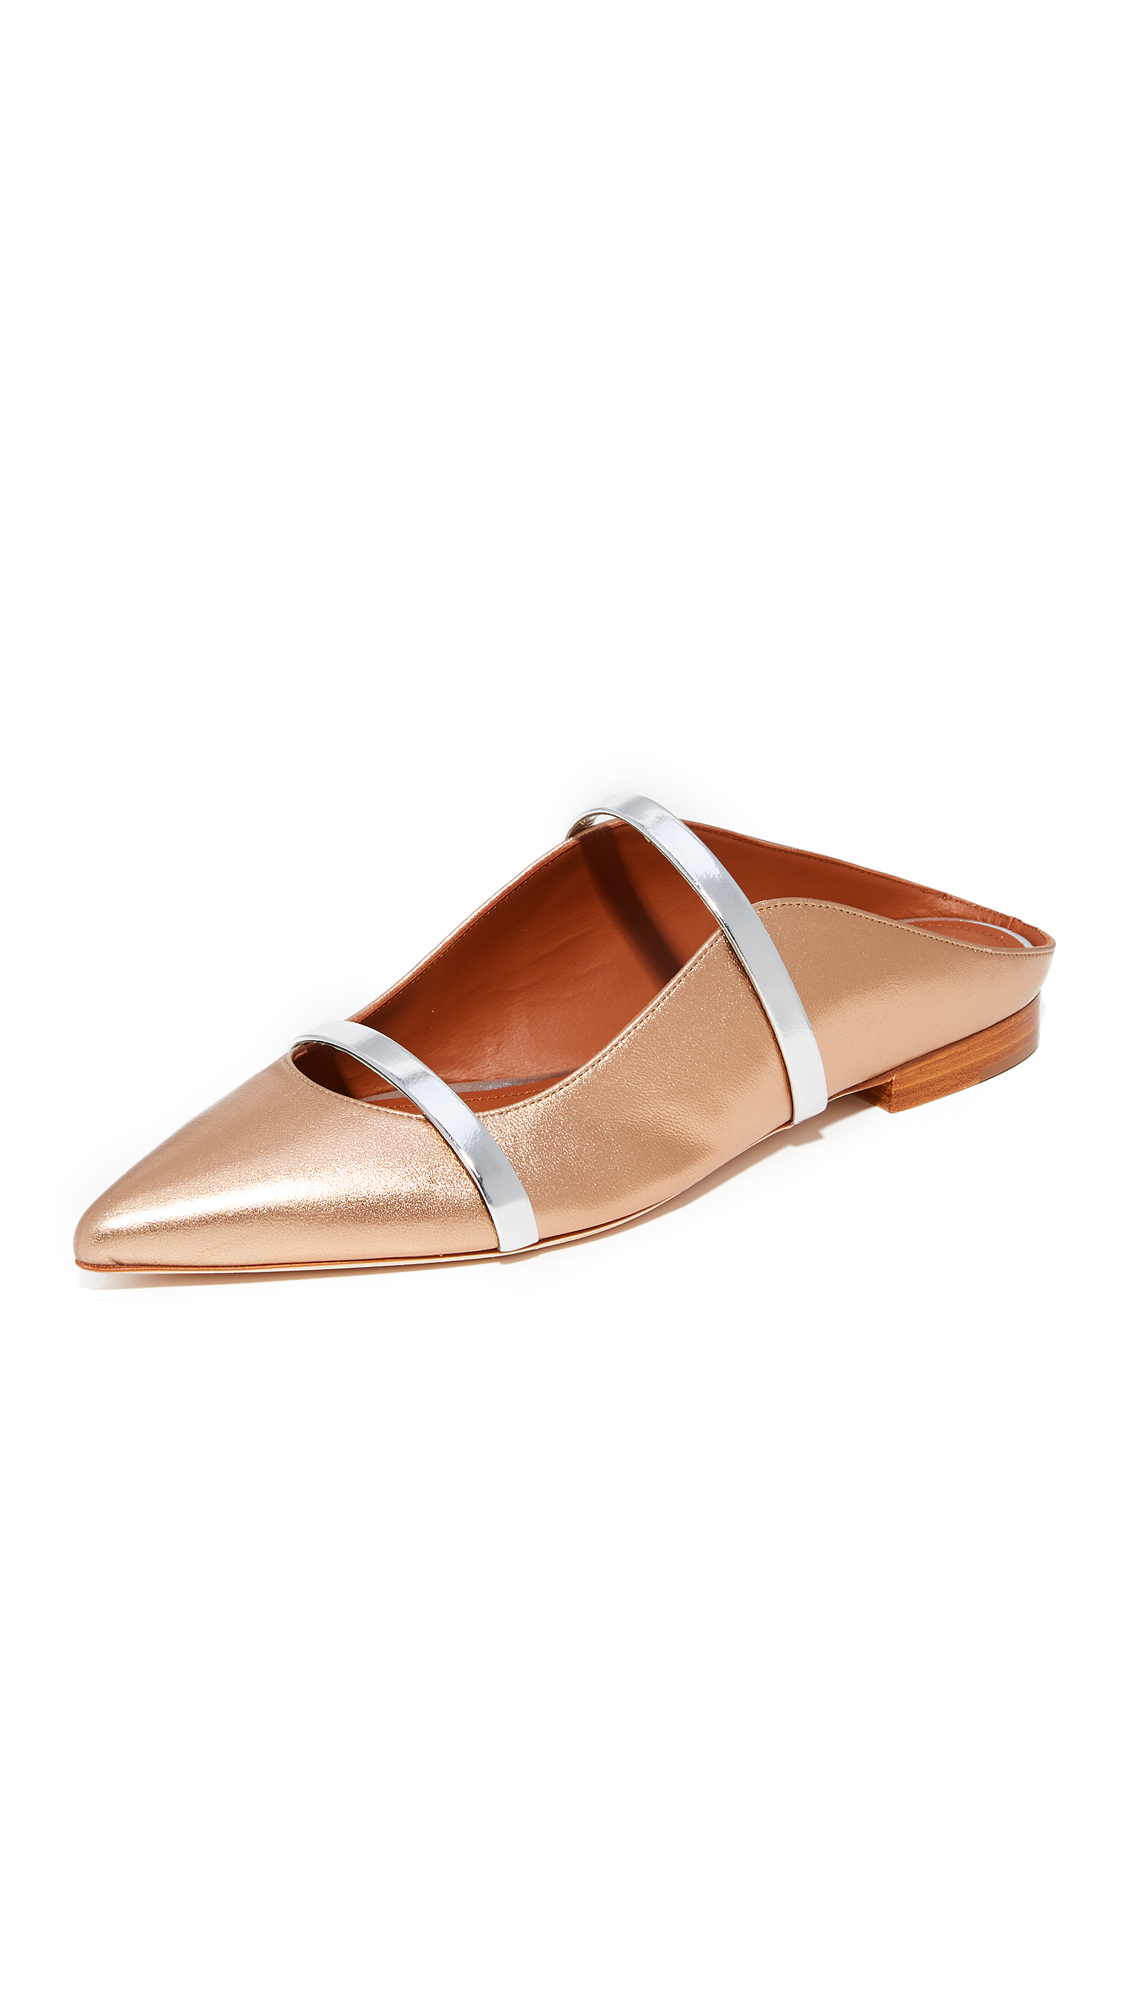 Malone Souliers by Roy Luwolt Maureen Flat Slides - Gold/Silver